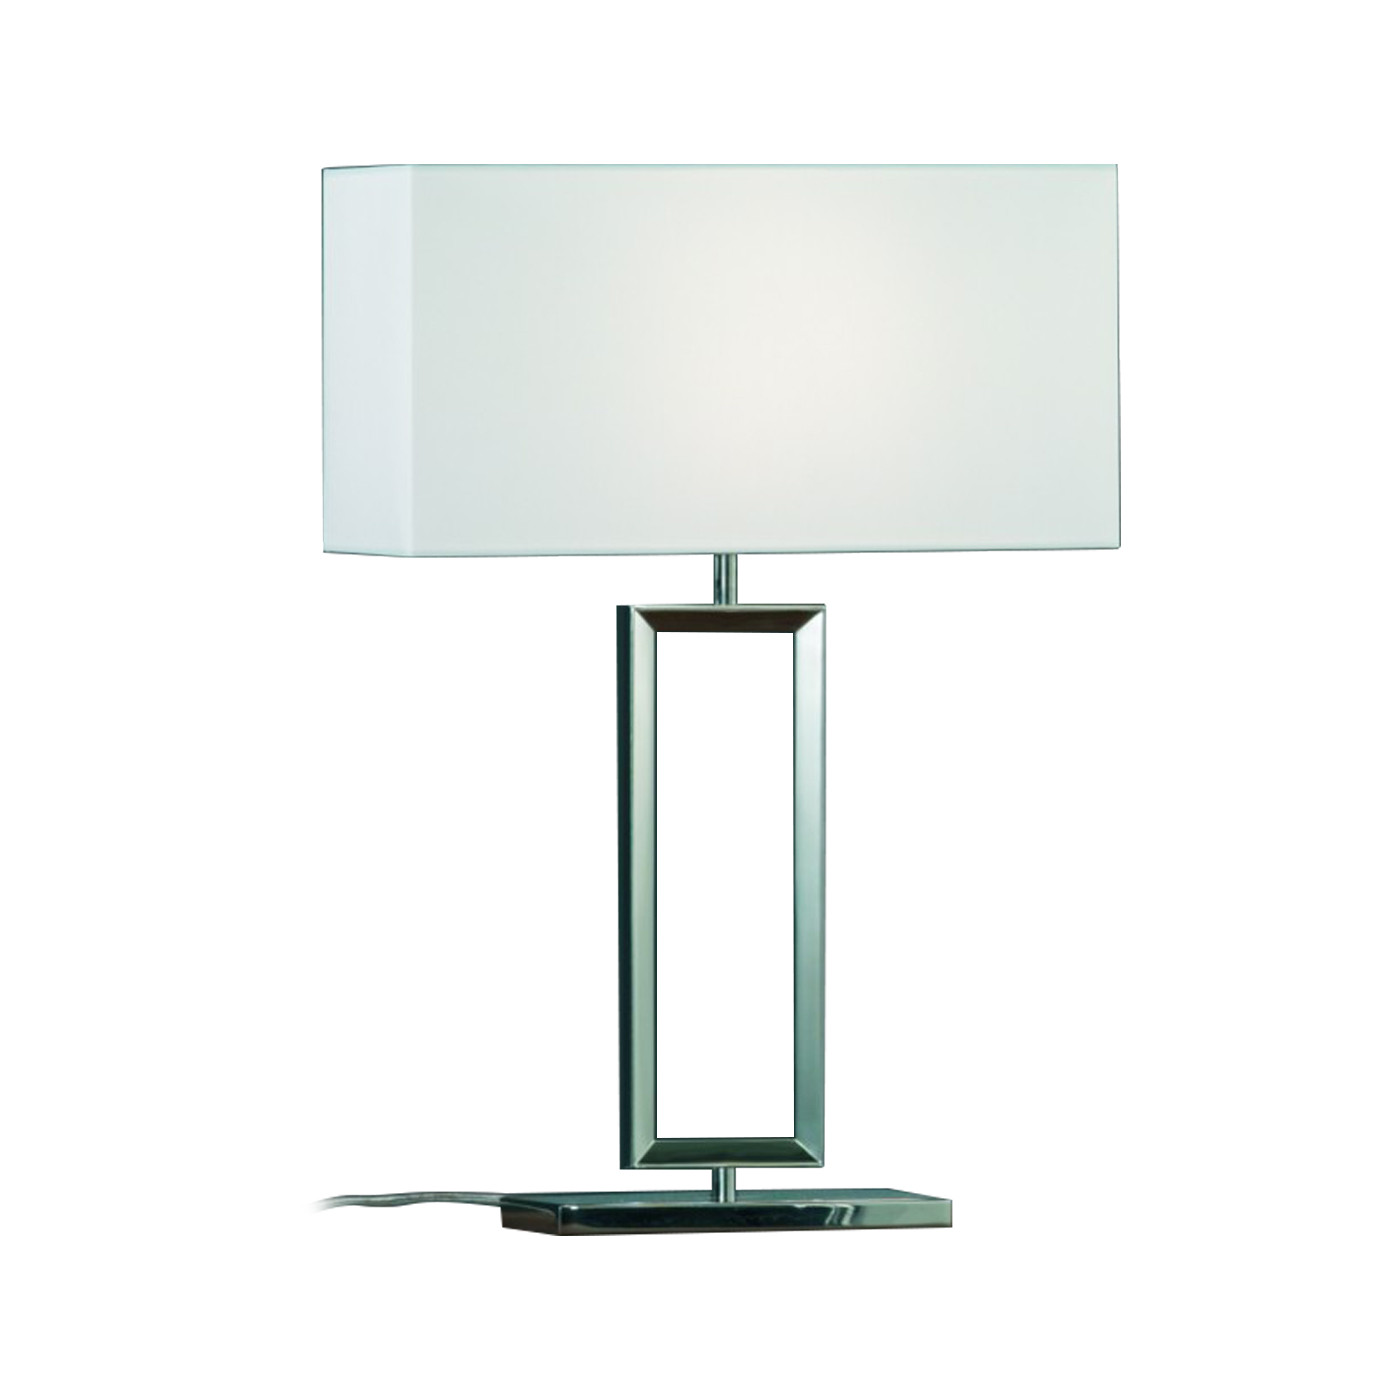 Helestra Enna 2 L Lampe de table